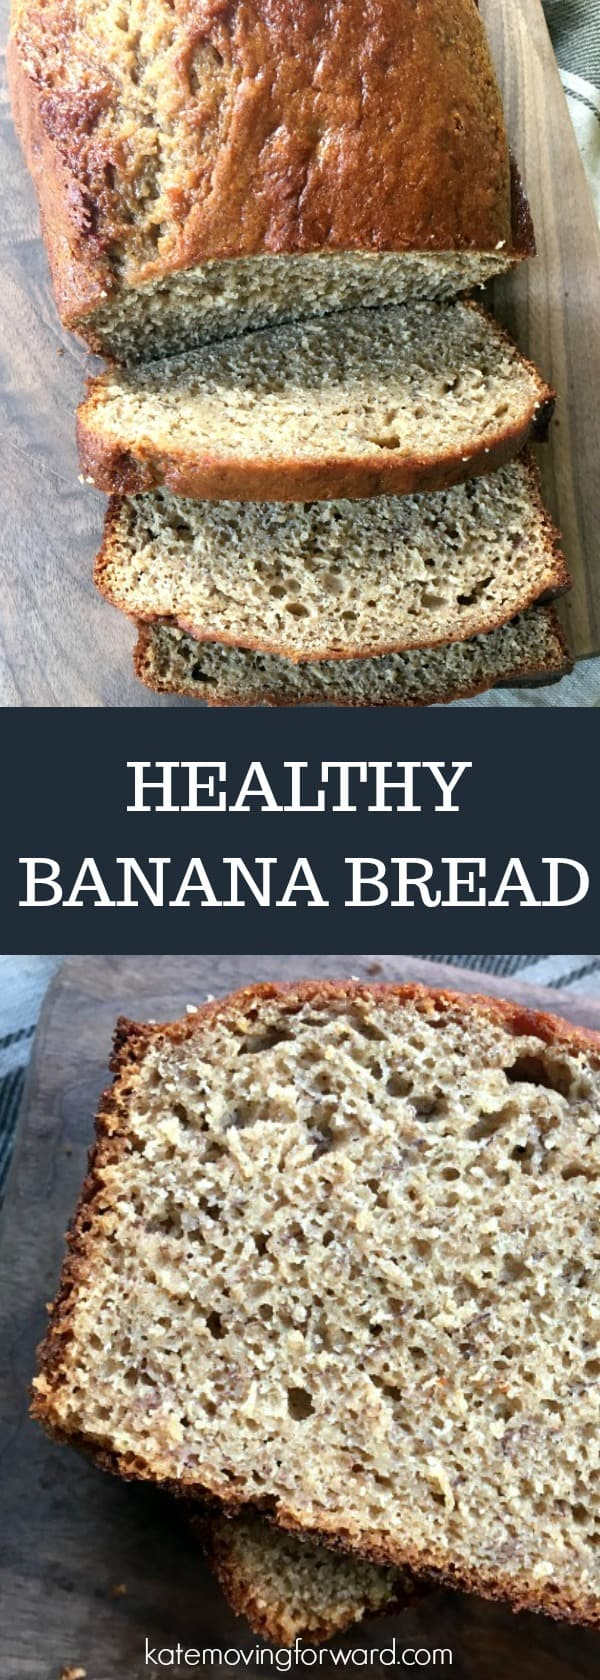 Healthy Banana Bread -